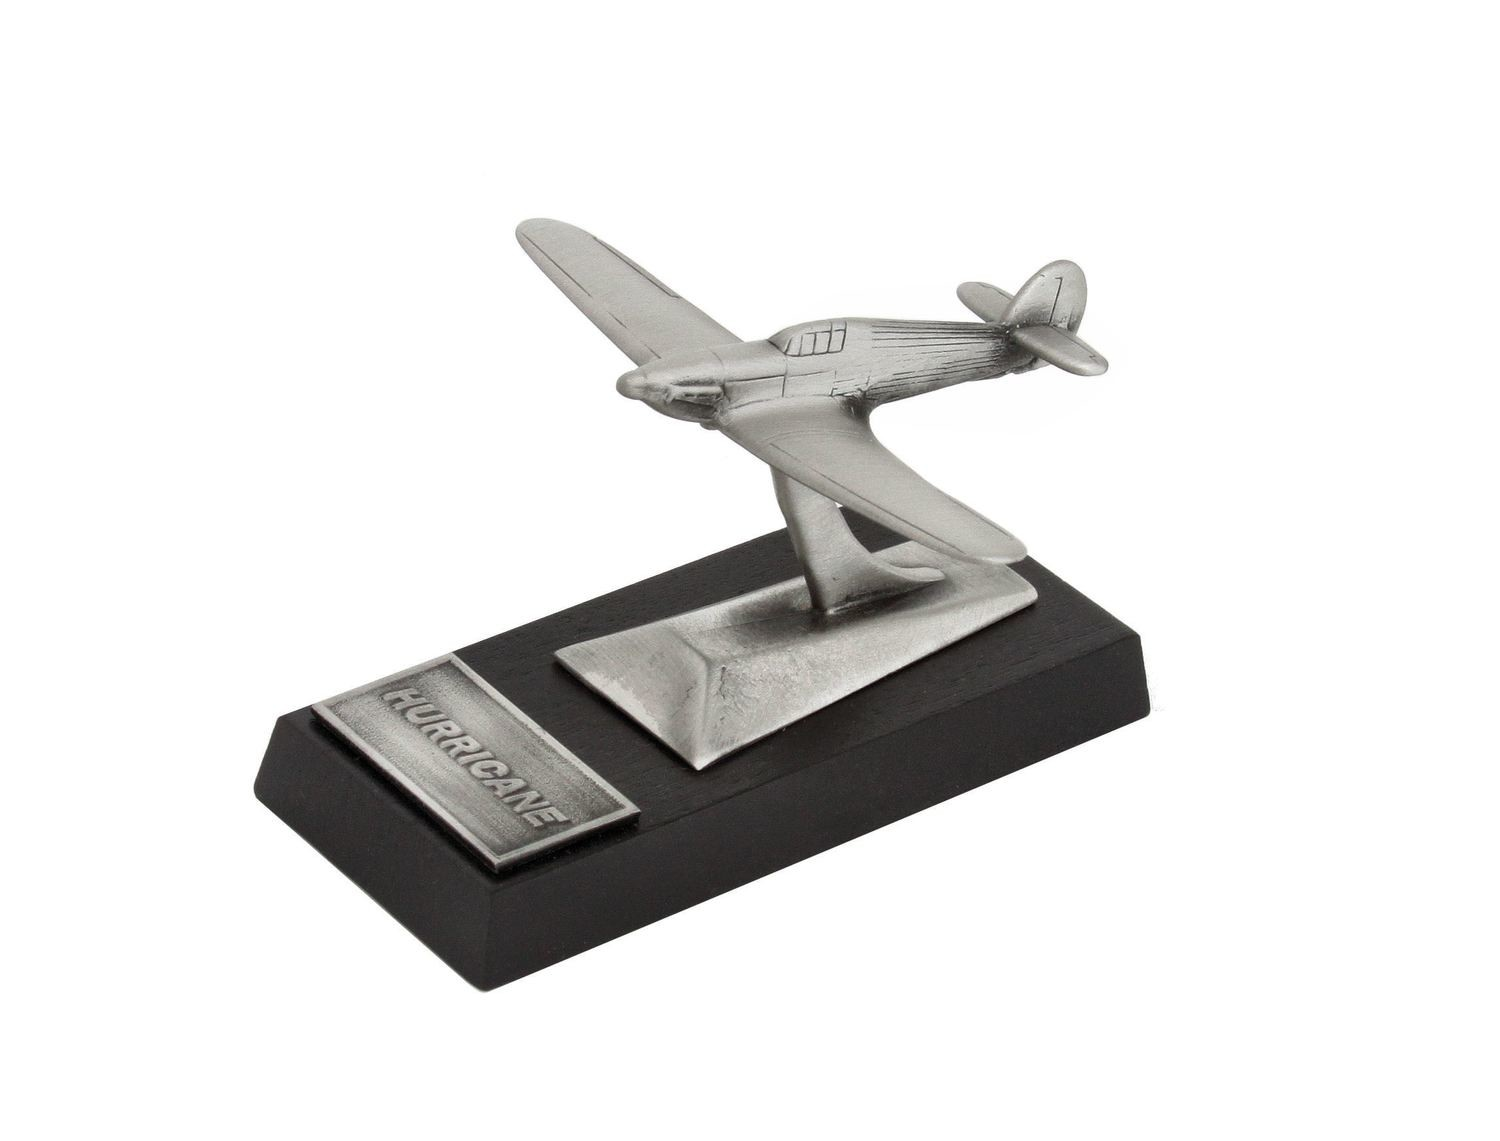 Hawker Hurricane Desk Model